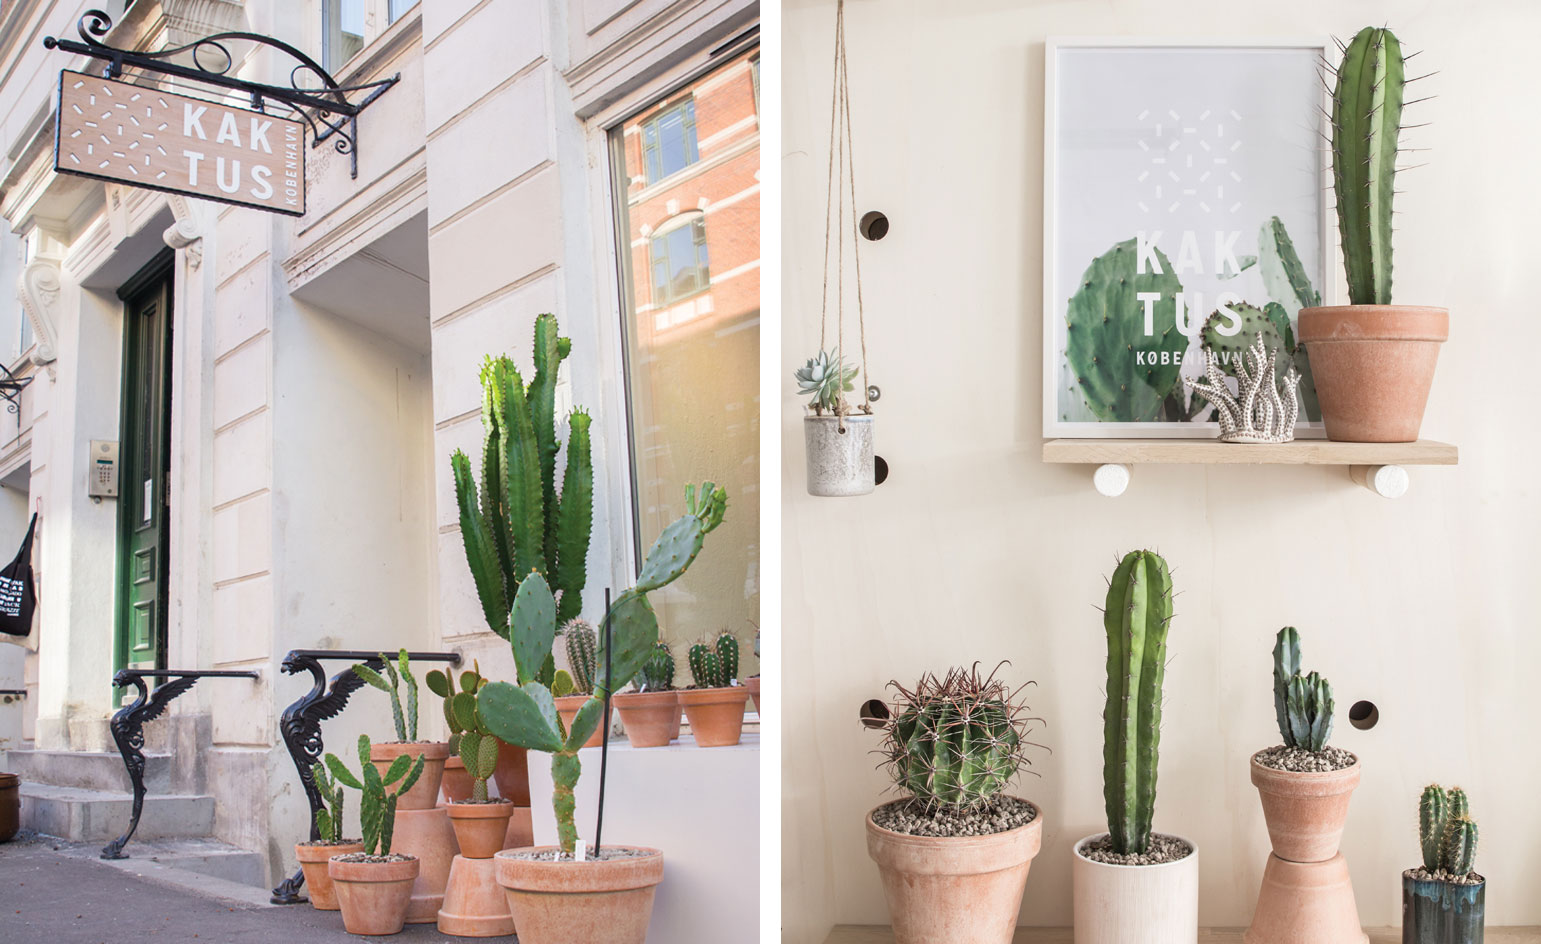 kaktus store, cactus shop by chiara stella home2